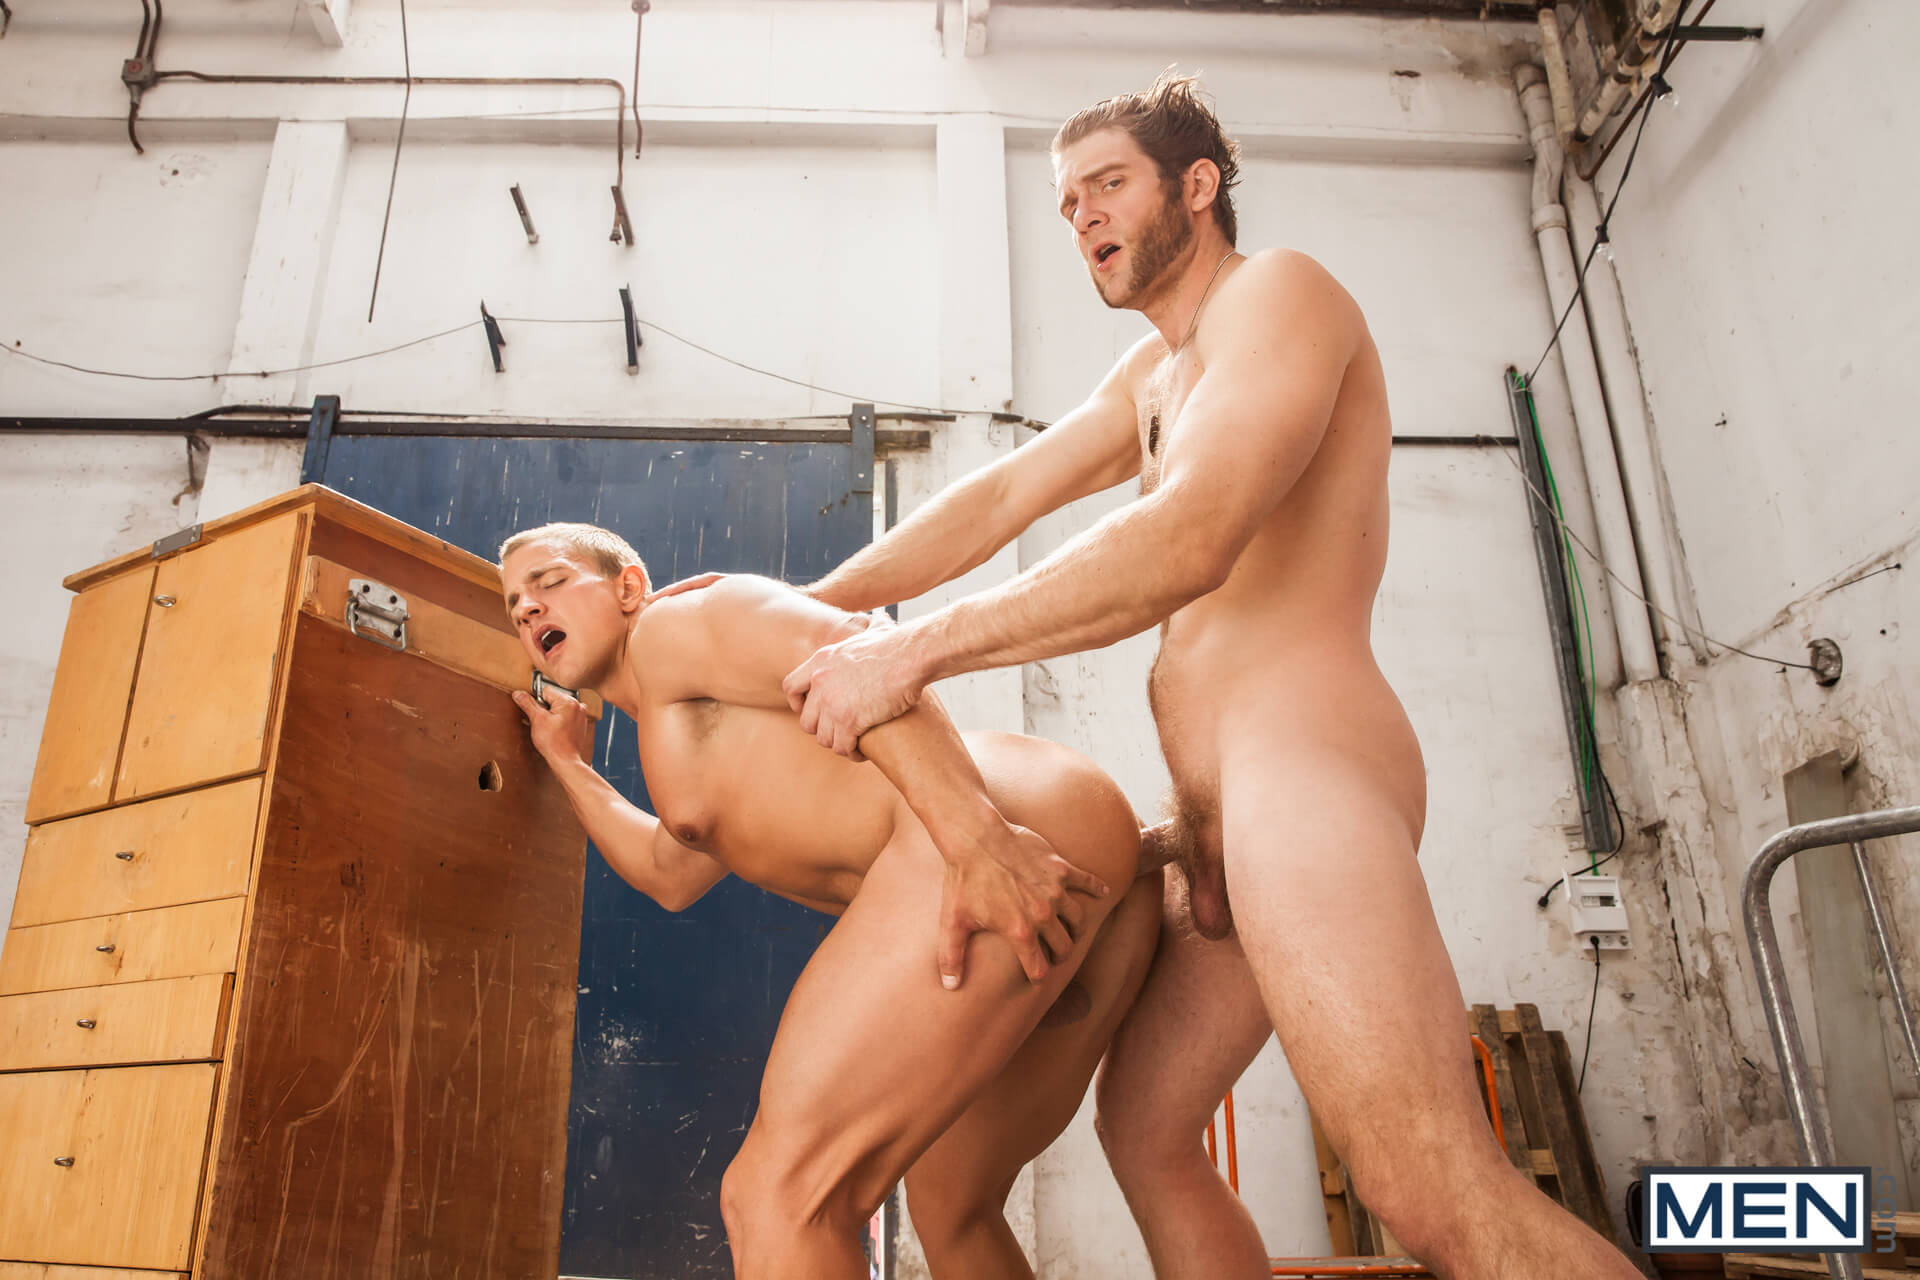 men super gay hero x men a gay xxx parody part 3 colby keller landon mycles gay porn blog image 18